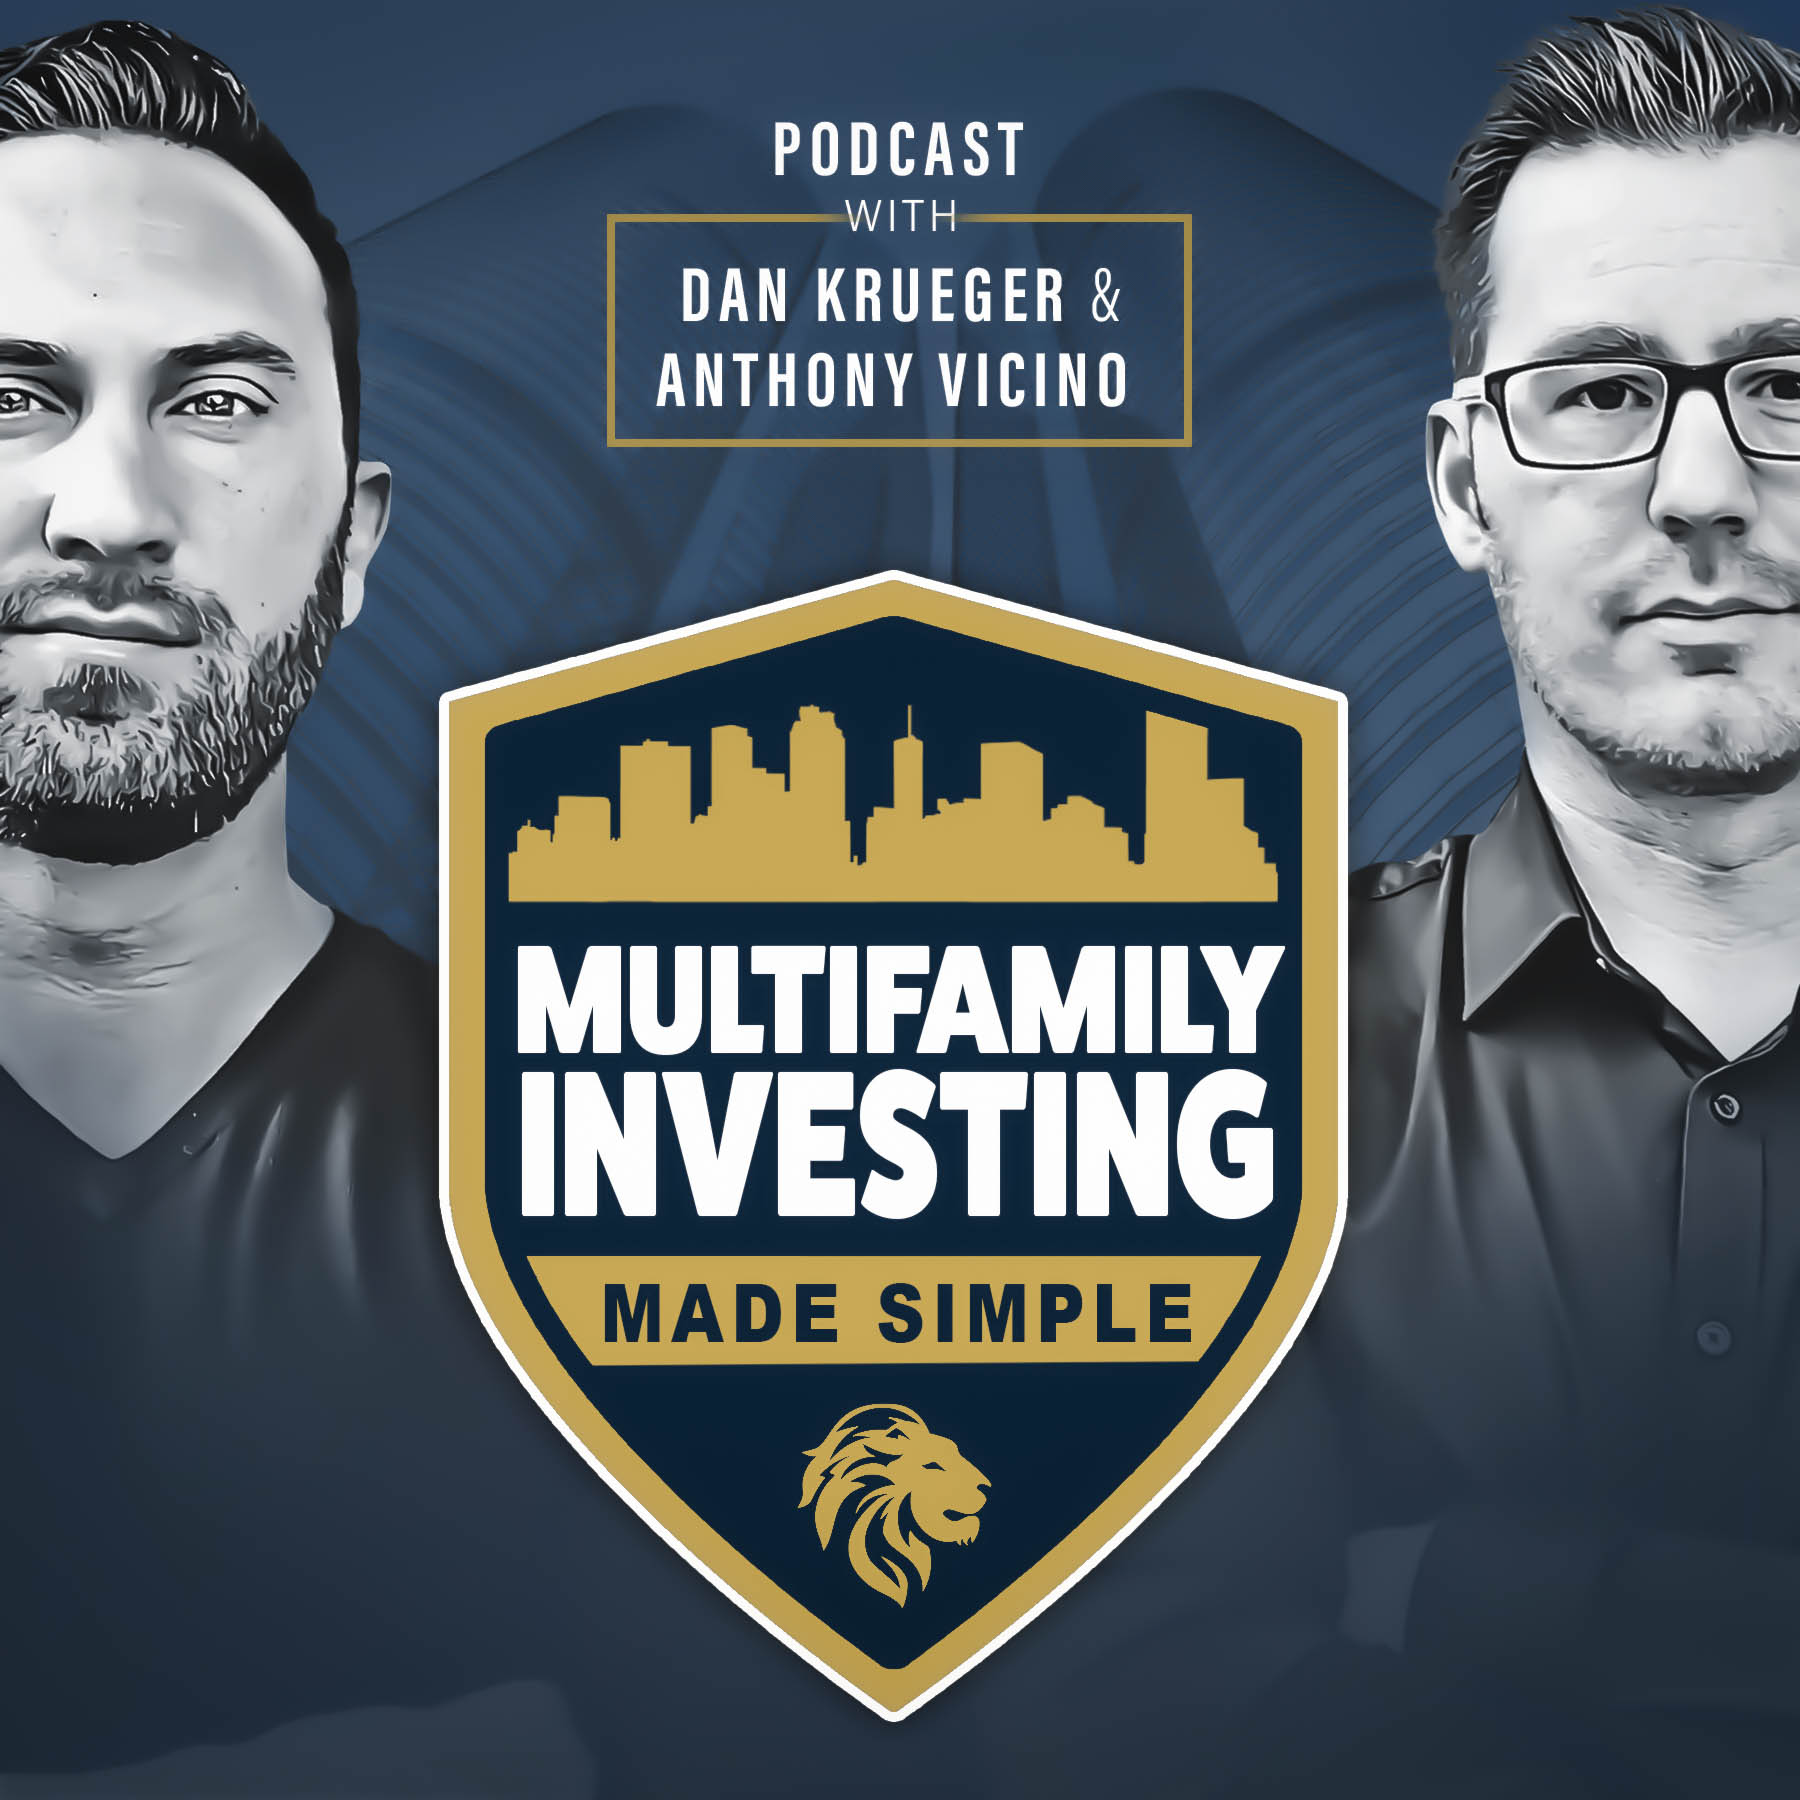 multifamily investing made simple podcast with invictus capital